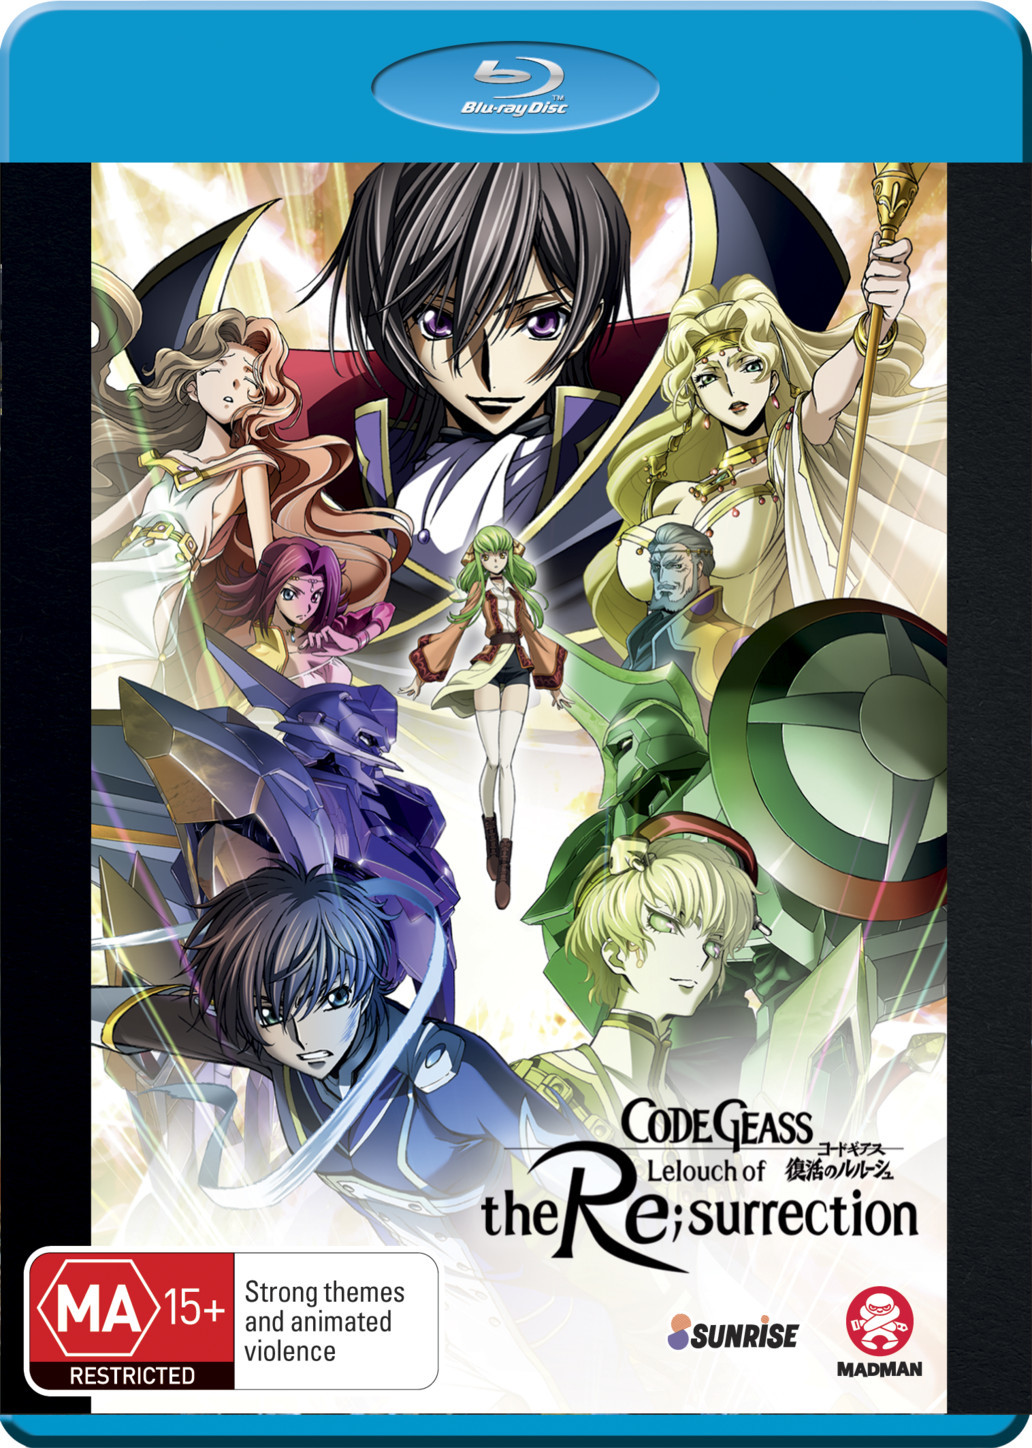 Code Geass: Lelouch of the Re;surrection on Blu-ray image